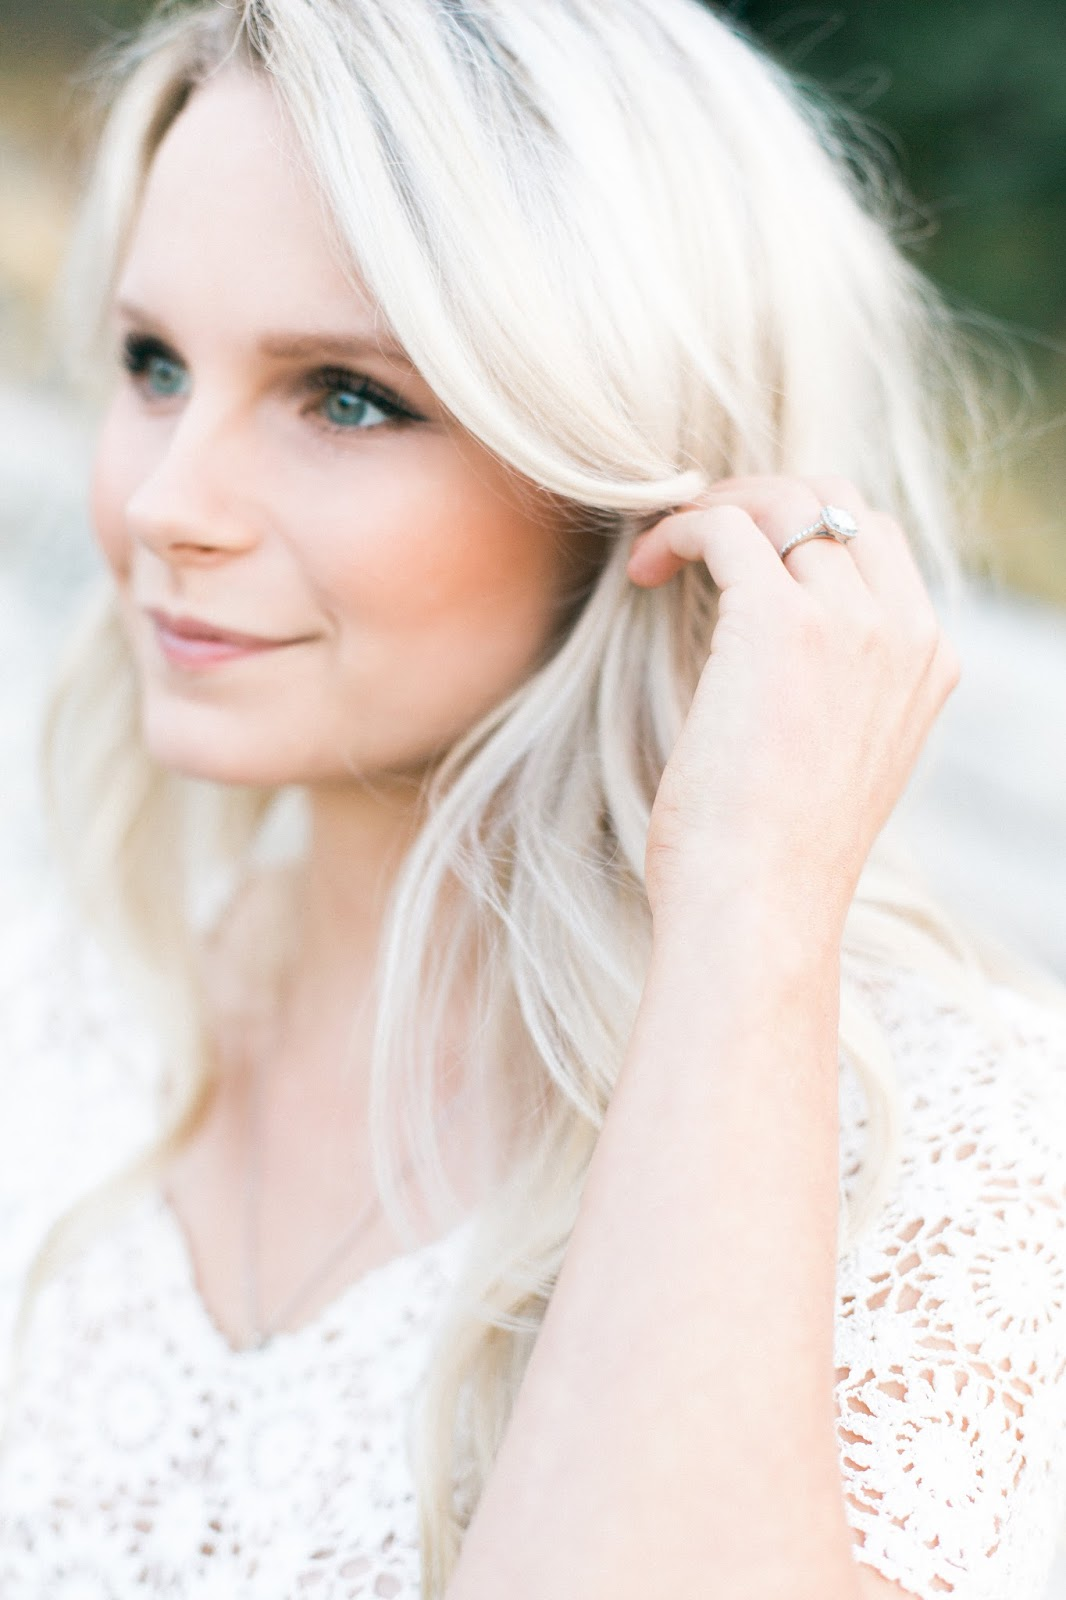 natural photo ready makeup for wedding and engagement photo shoots